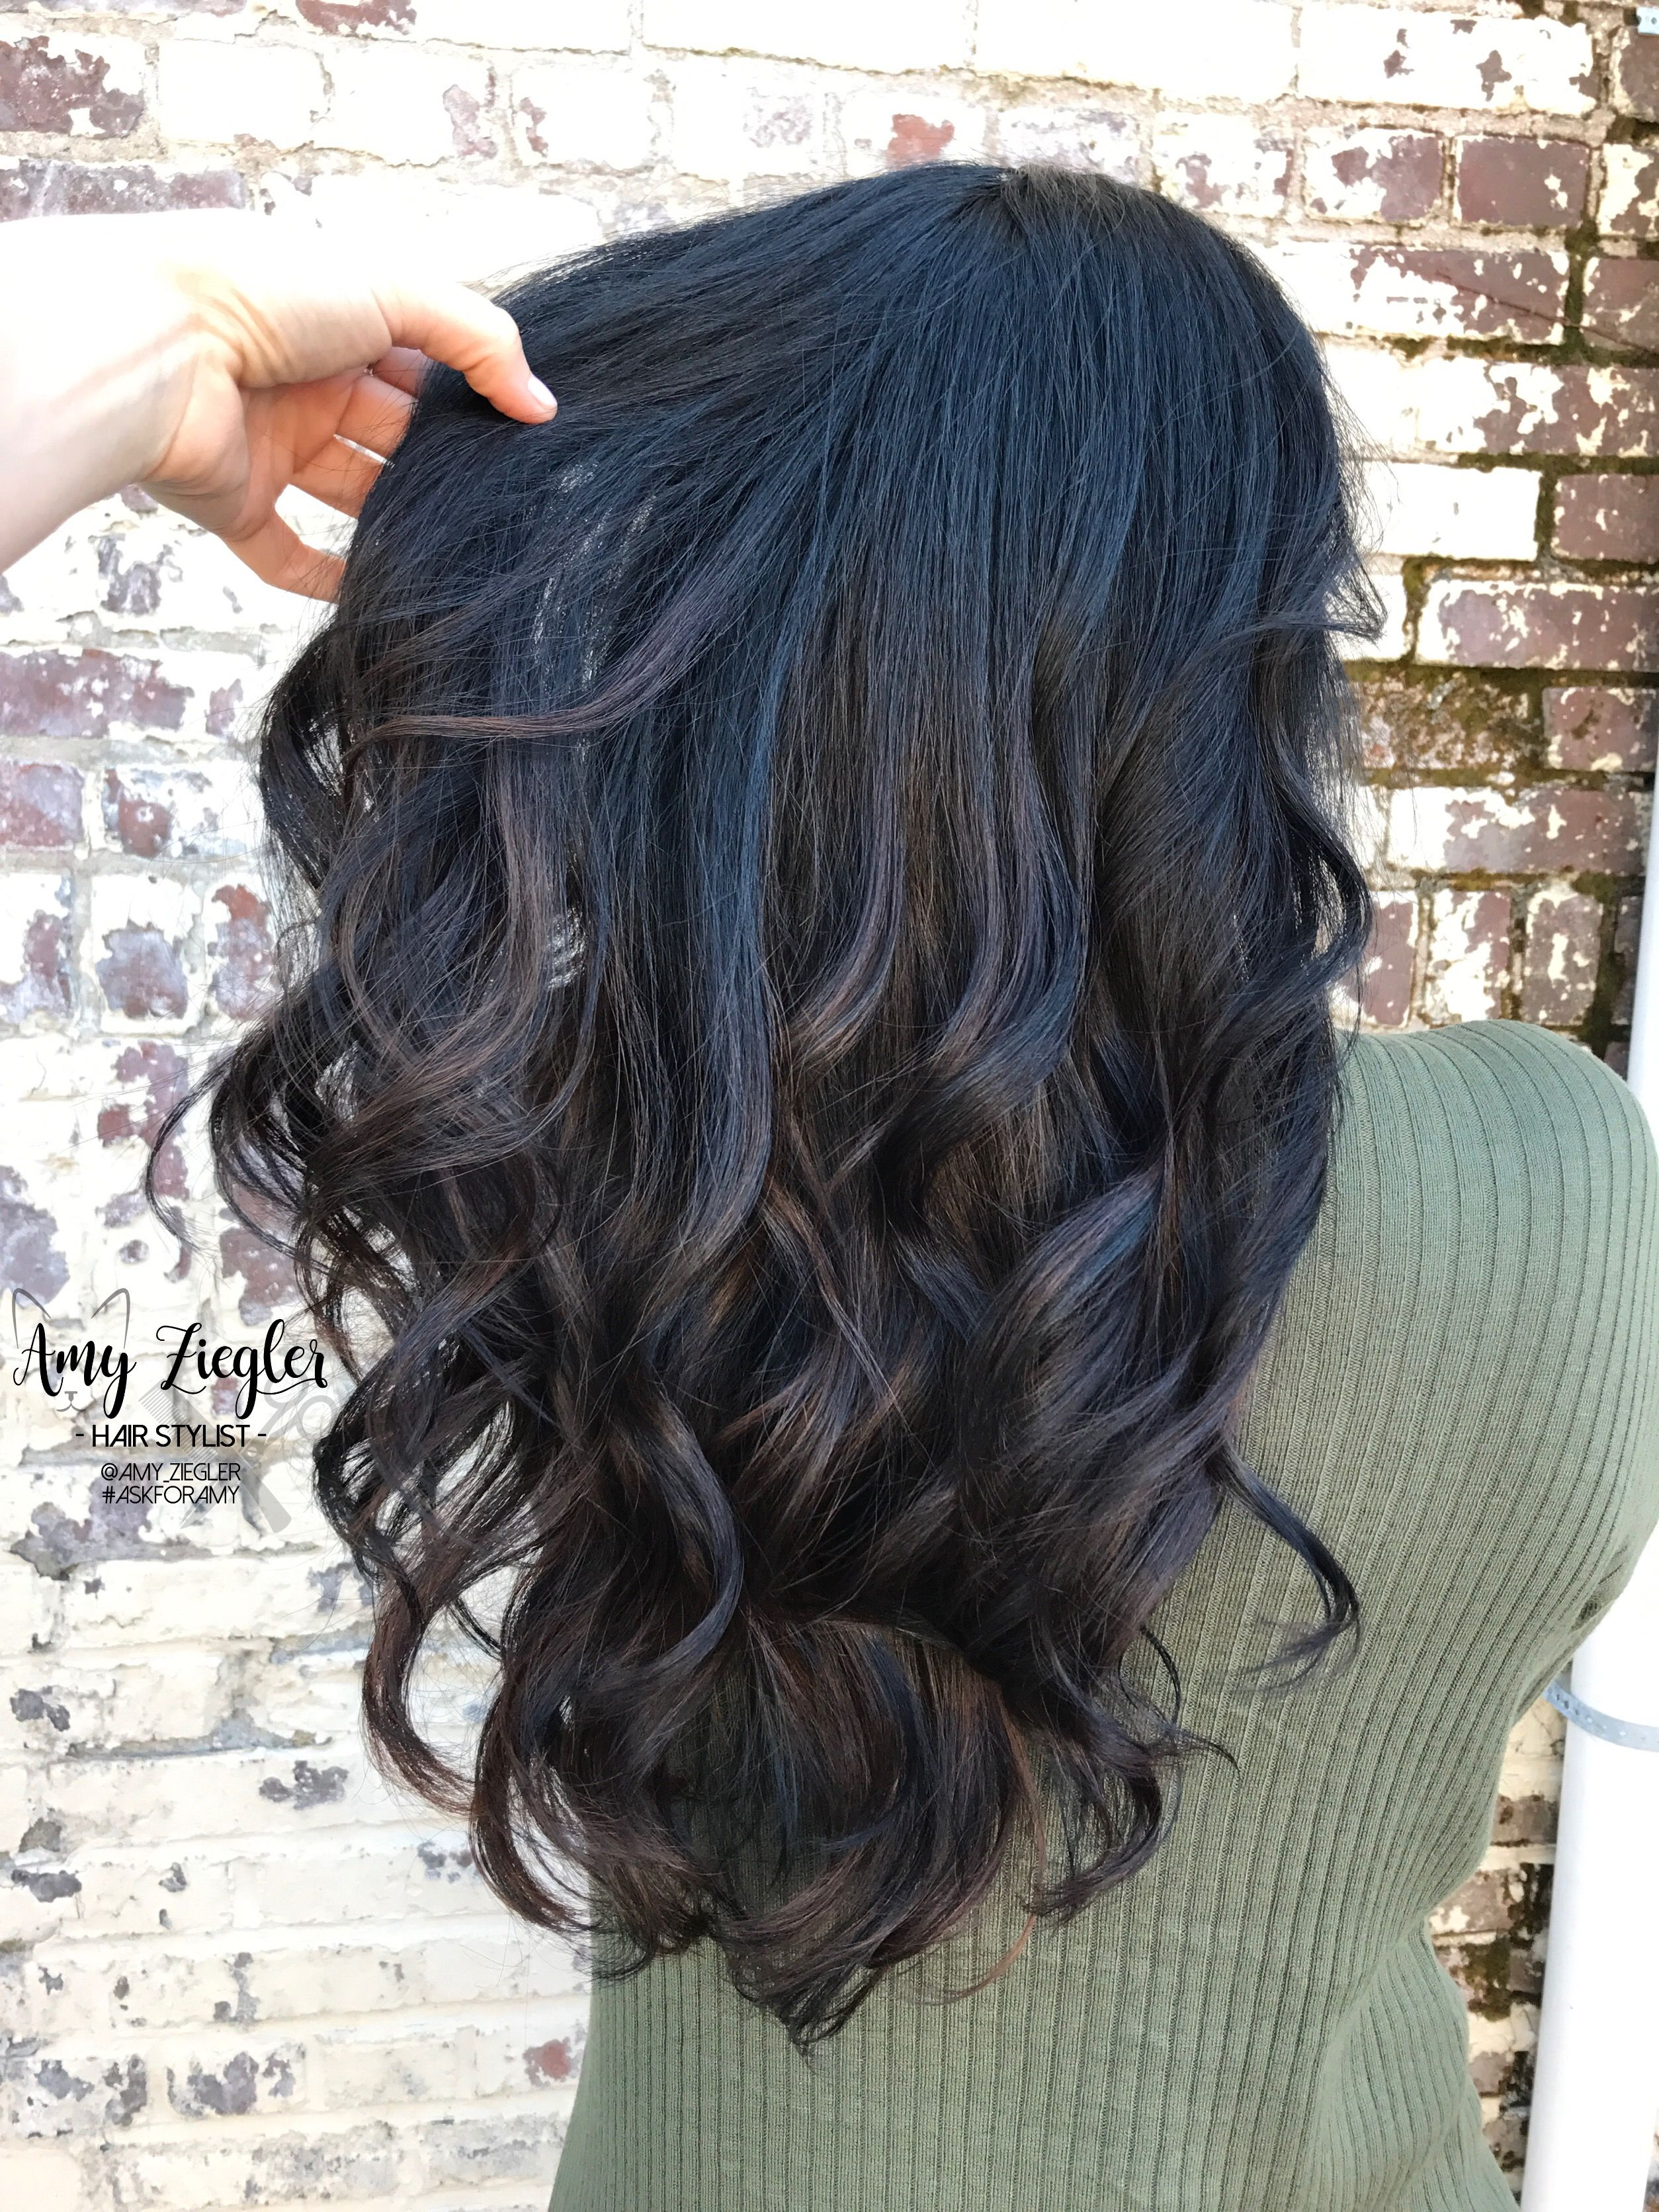 Hair blue tips on black hair